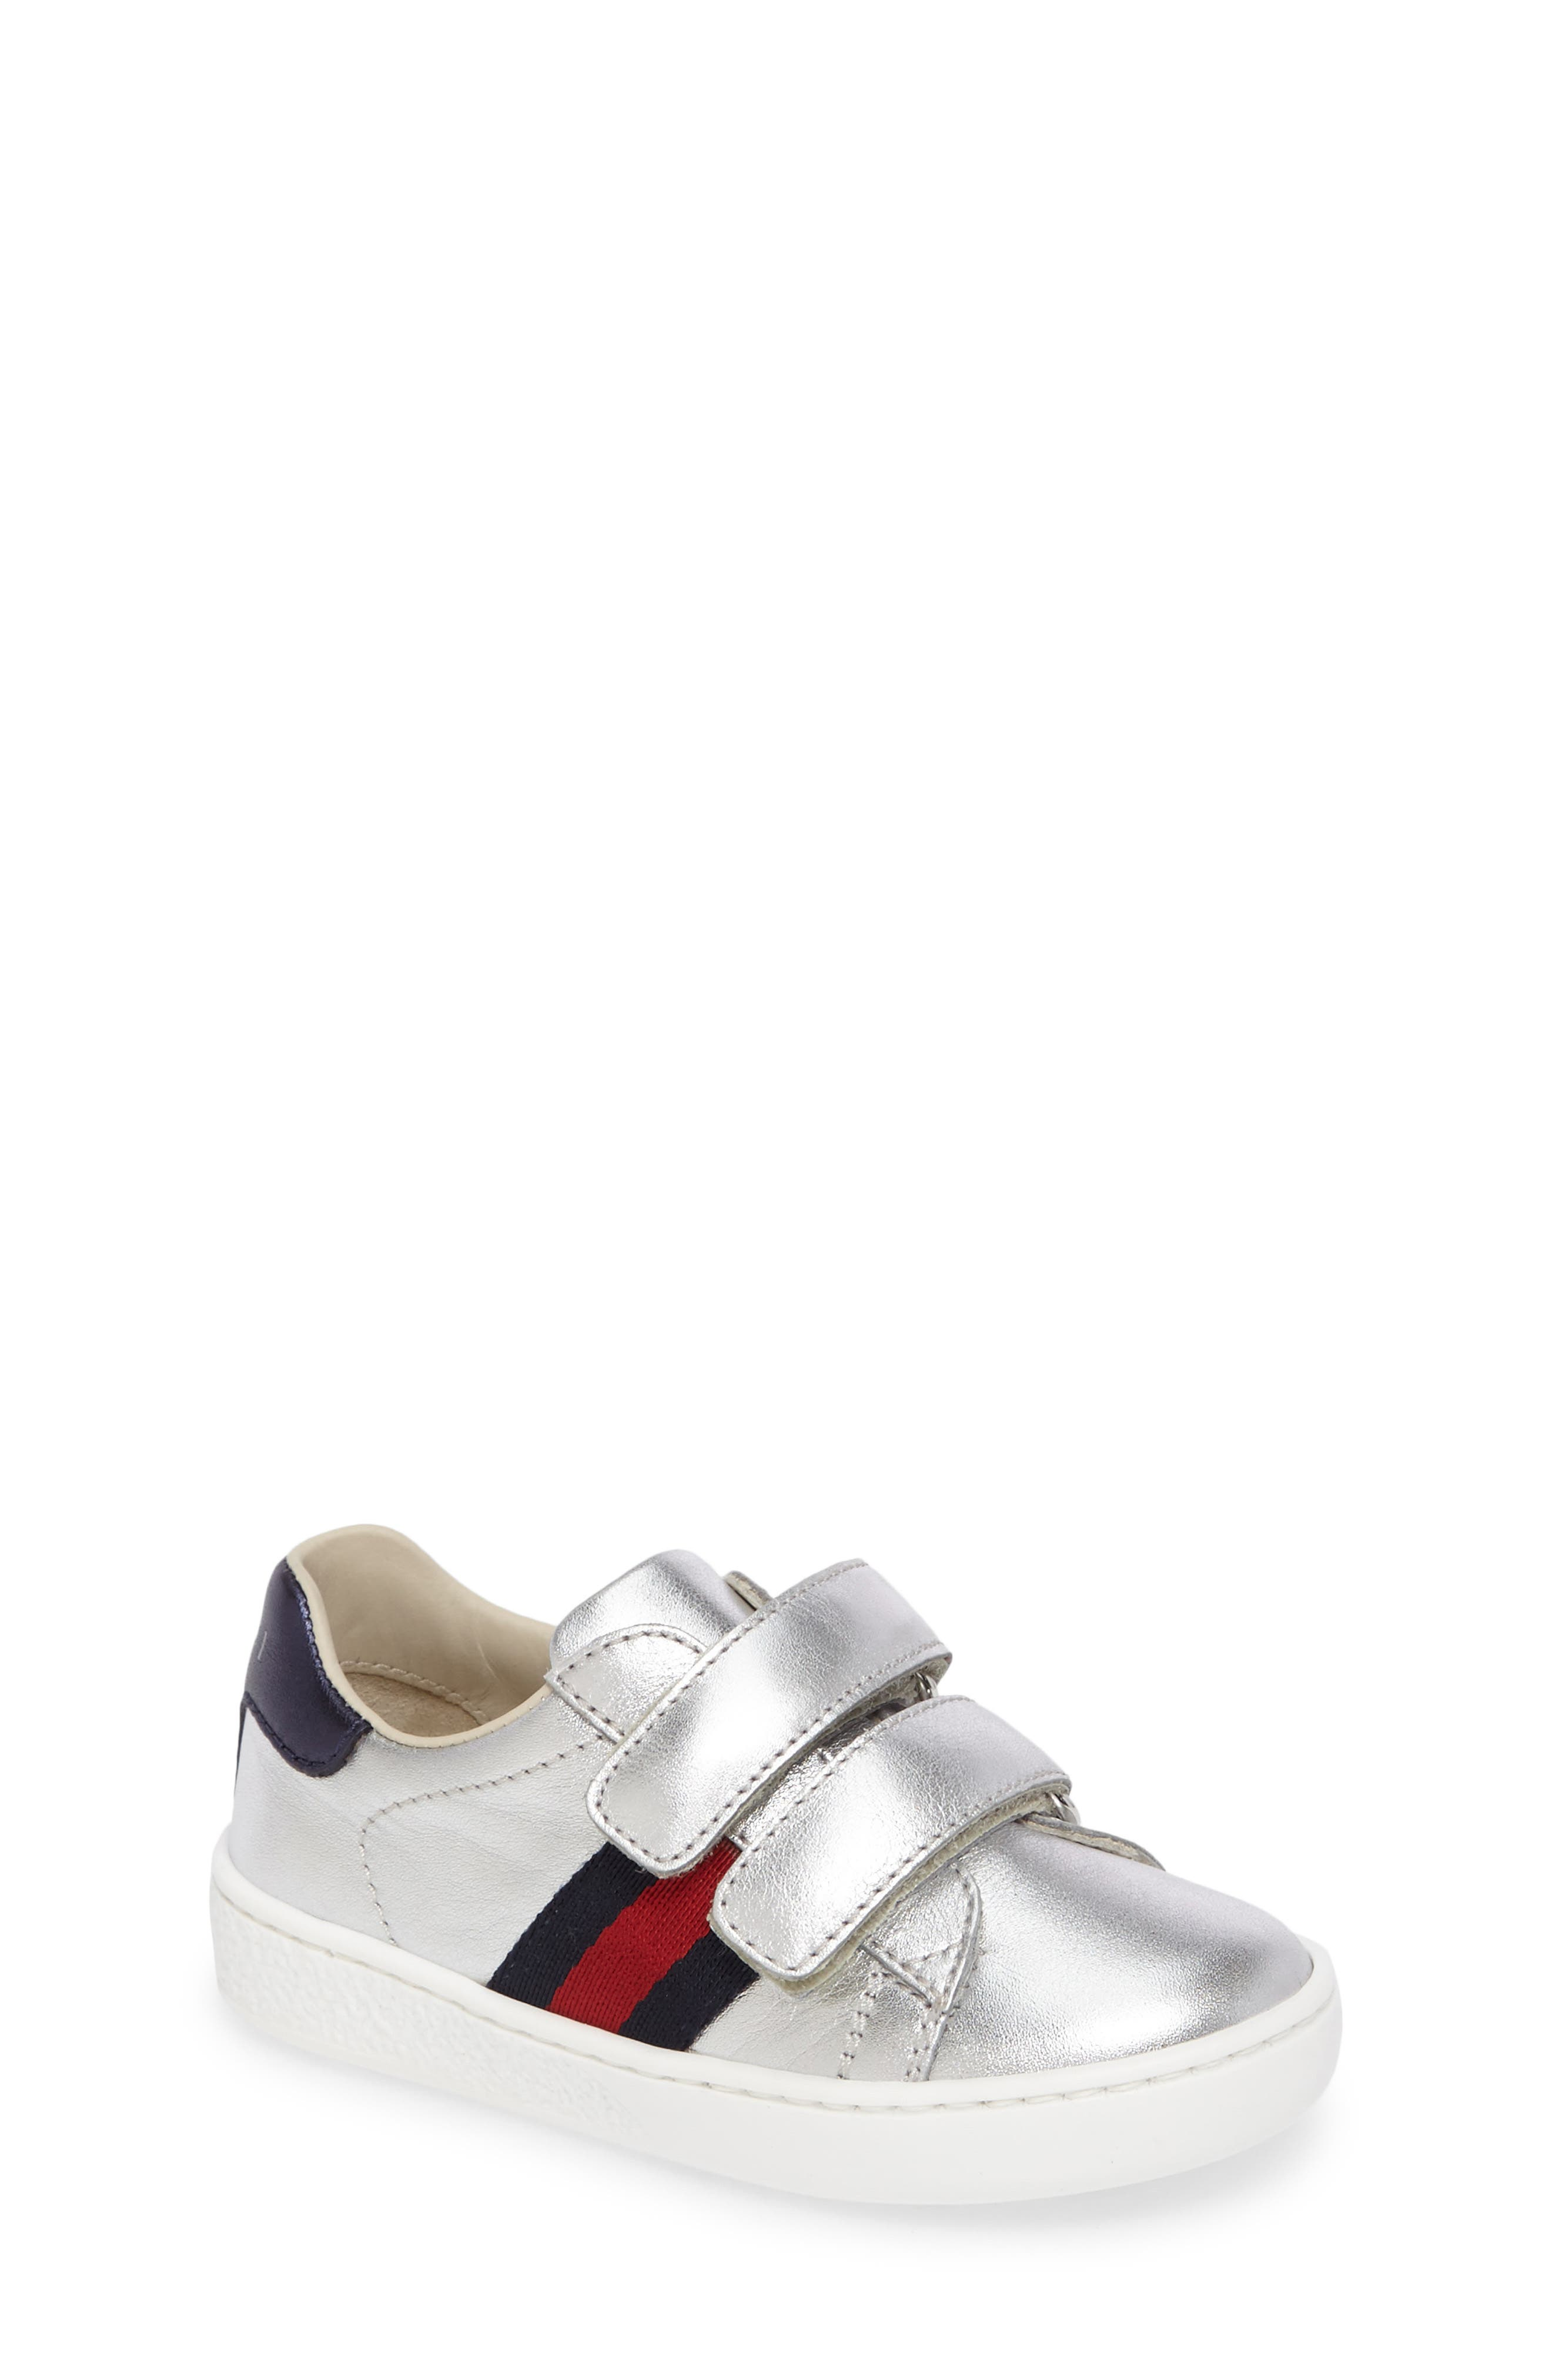 Alternate Image 1 Selected - Gucci New Ace Sneaker (Baby, Walker, Toddler & Little Kid)